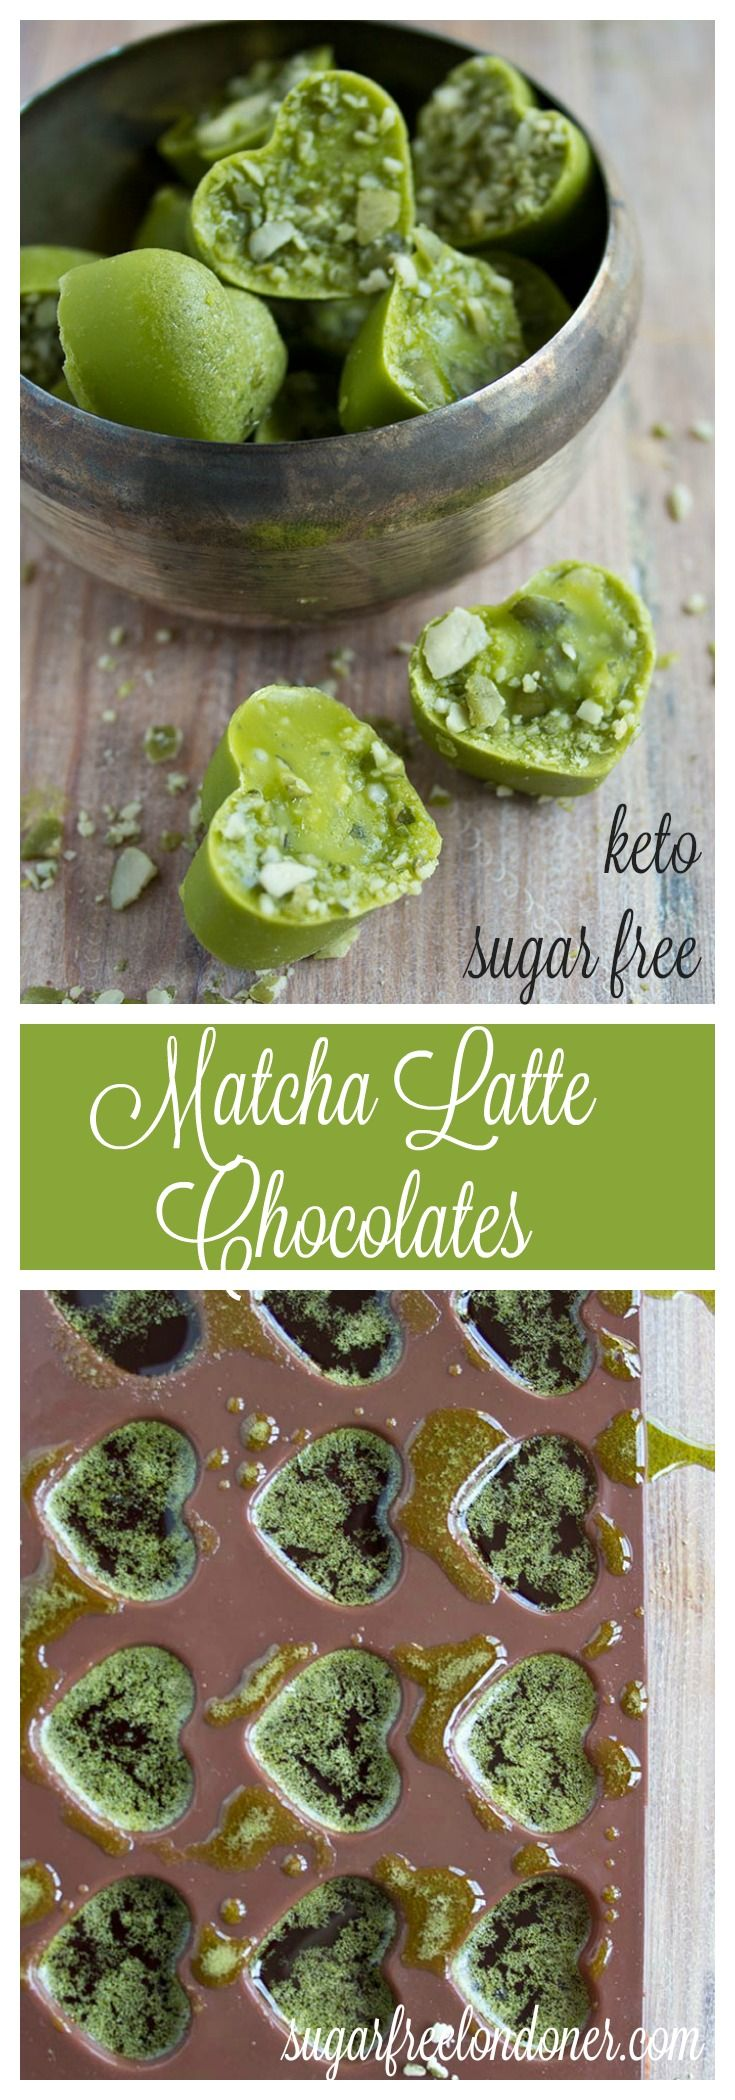 A delicious and easy keto treat that is bursting with antioxidants: Sugar free matcha latte chocolates.